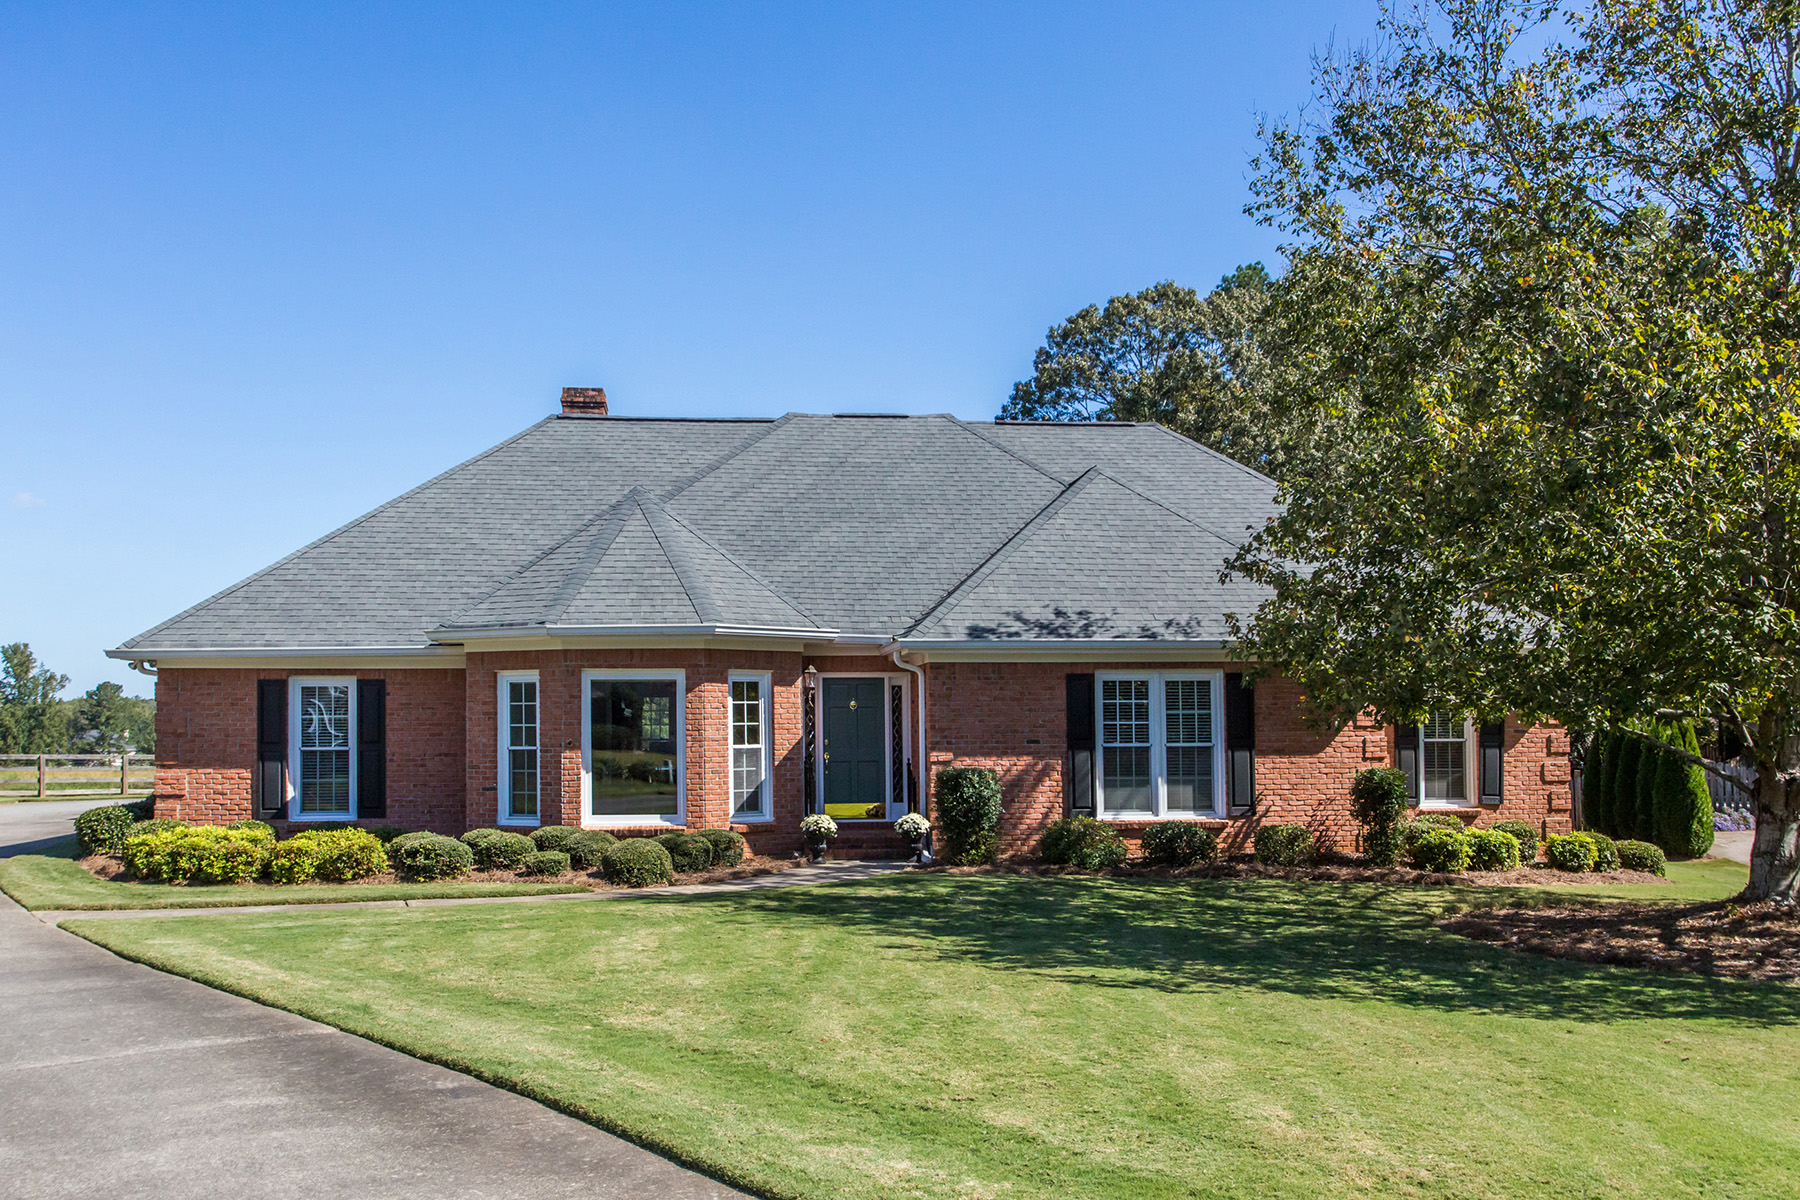 Single Family Home for Sale at Ranch With A Mountain View In Country Club Community 6000 Chukker Court, Cumming, Georgia, 30040 United States